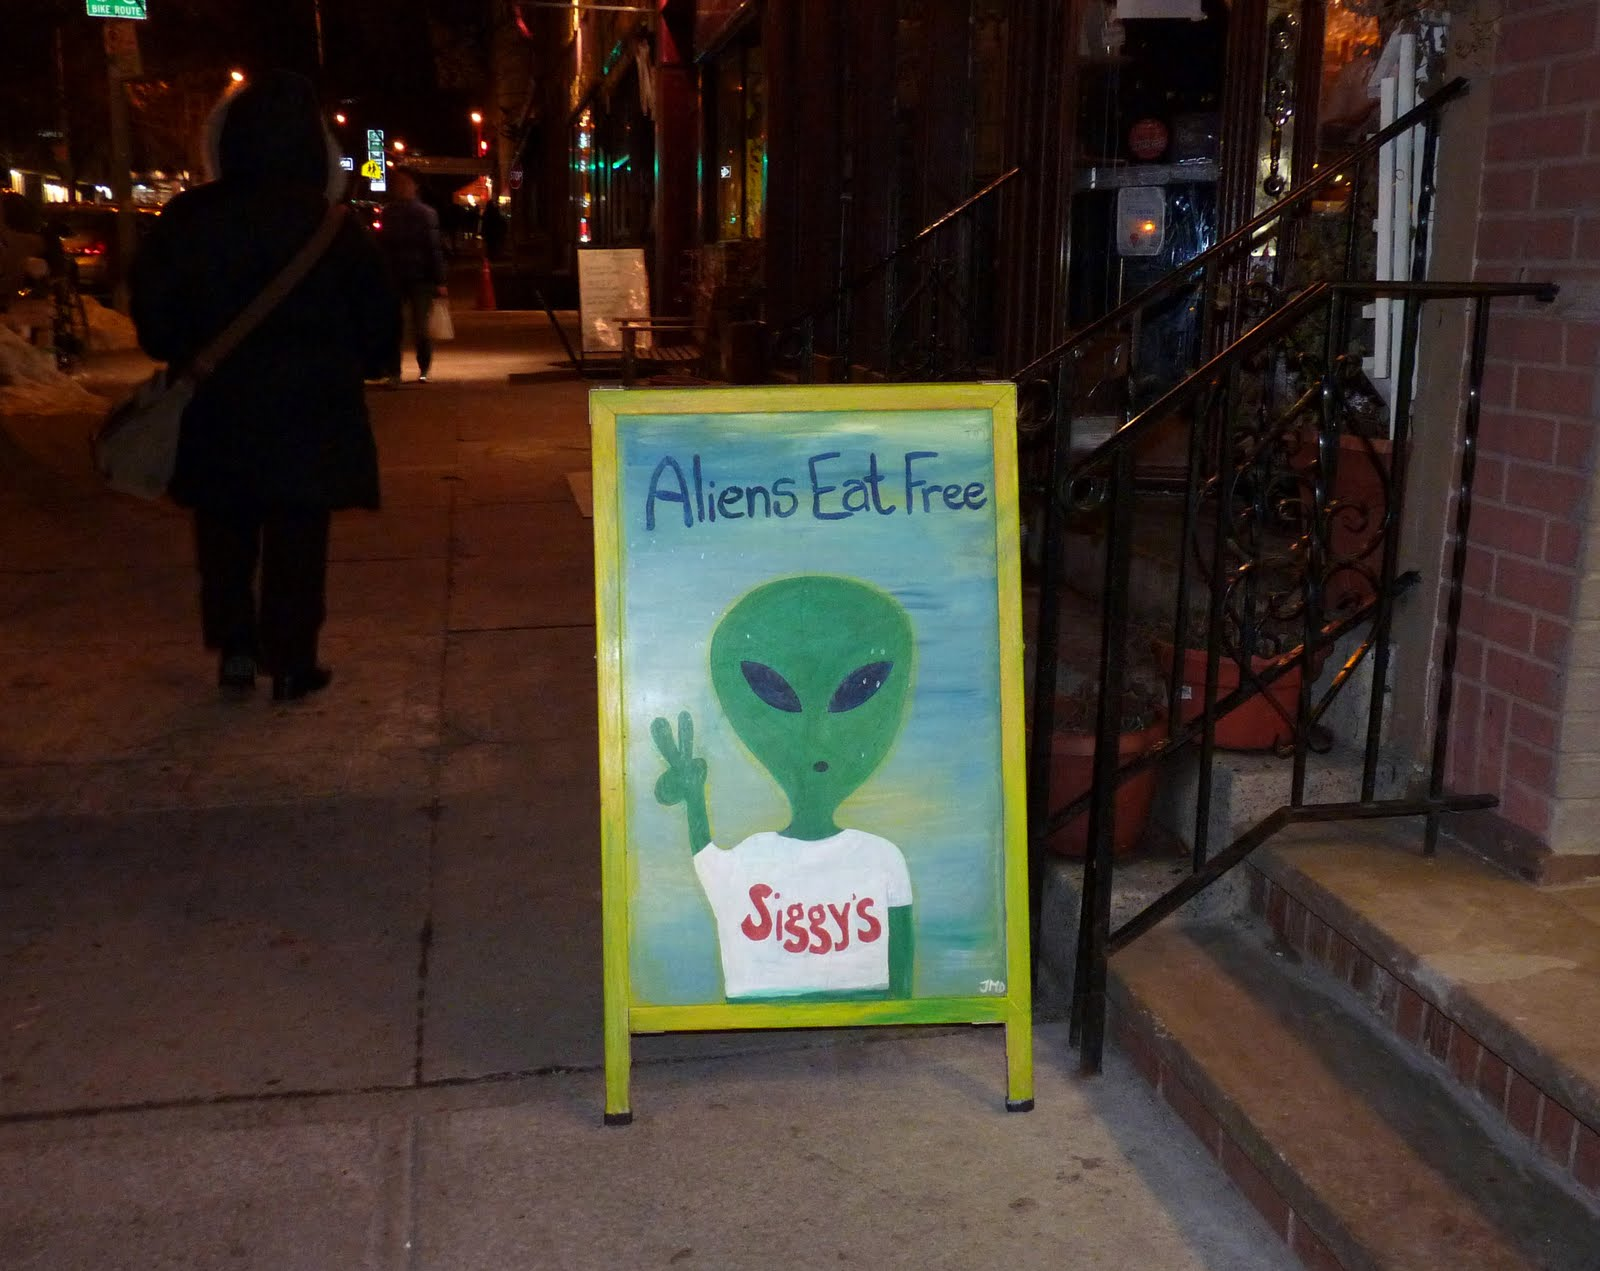 ... Brooklyn Heights has a long-standing policy of feeding aliens for free.